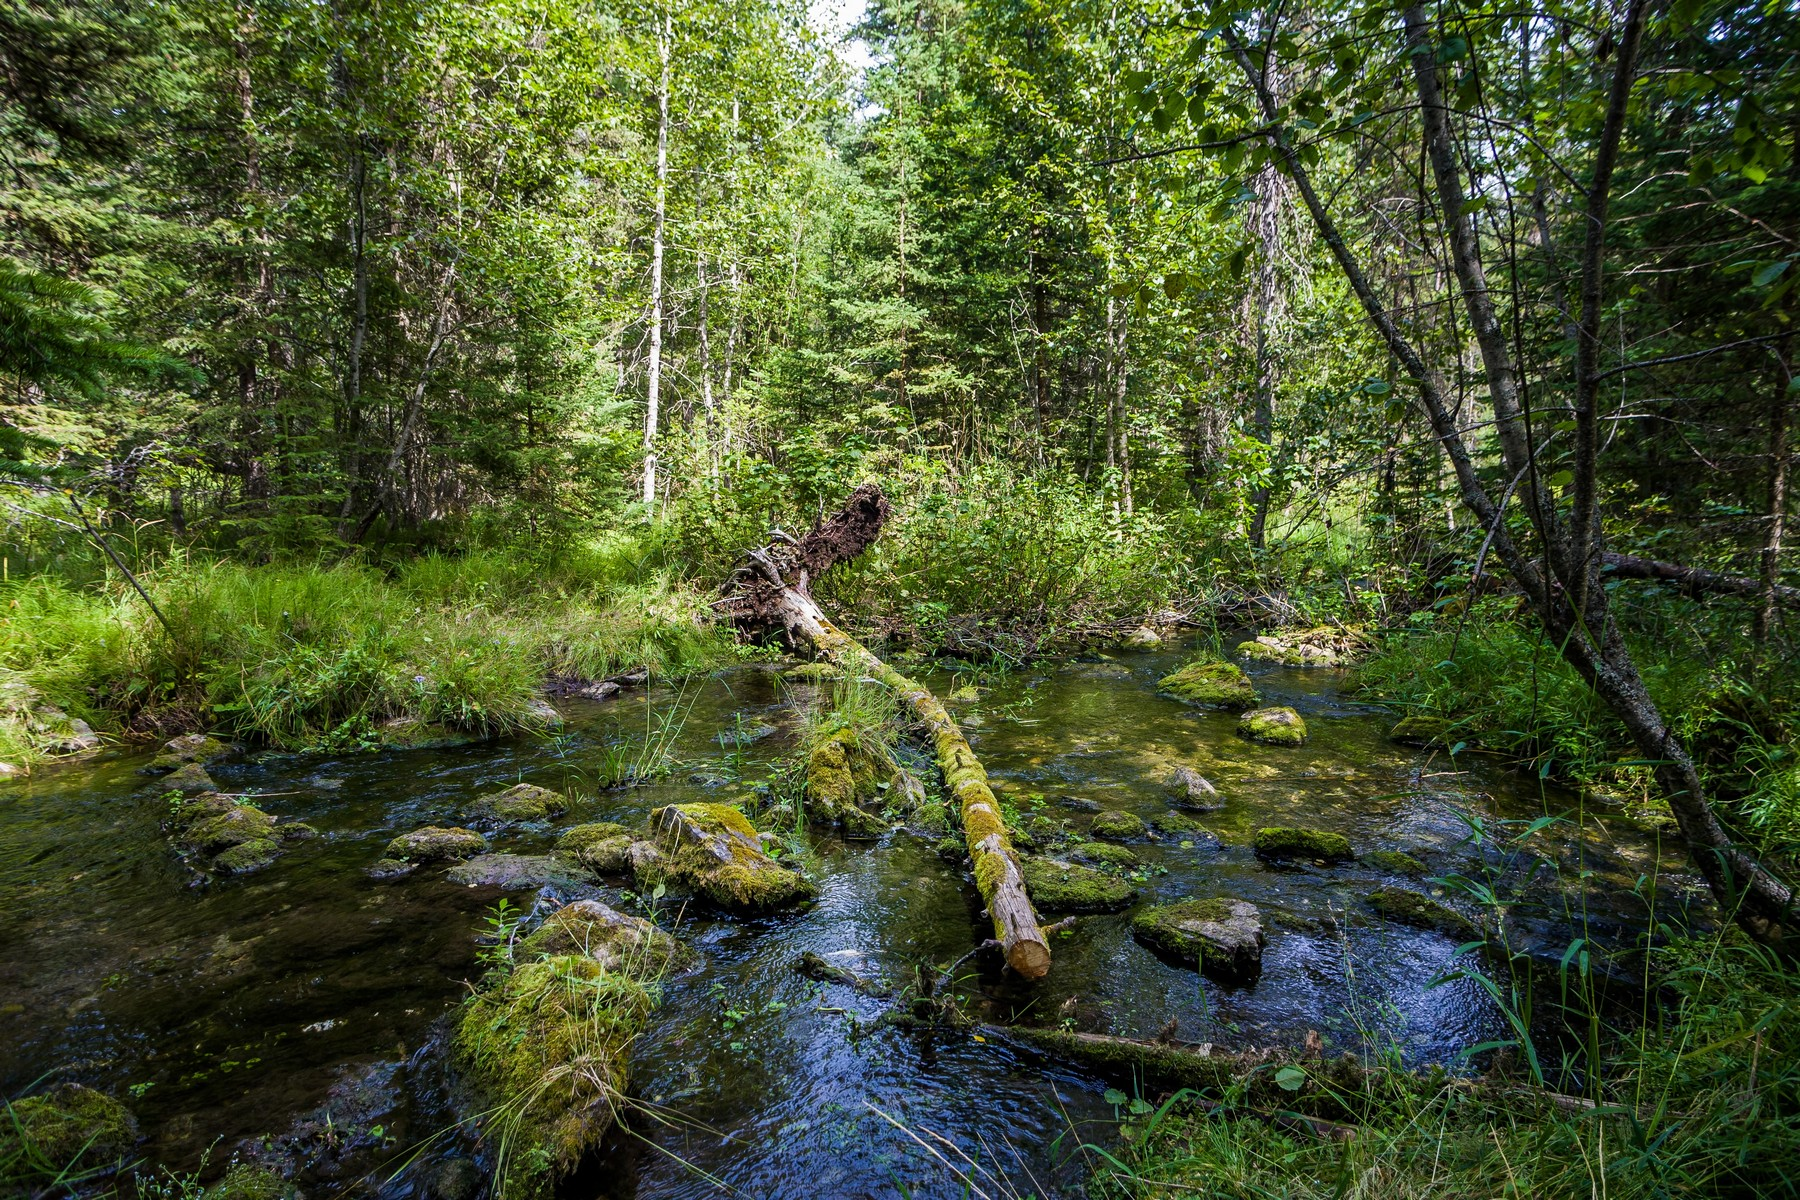 Land for Sale at 974 Rhodes, Kalispell, MT 59901 974 Rhodes Kalispell, Montana 59901 United States